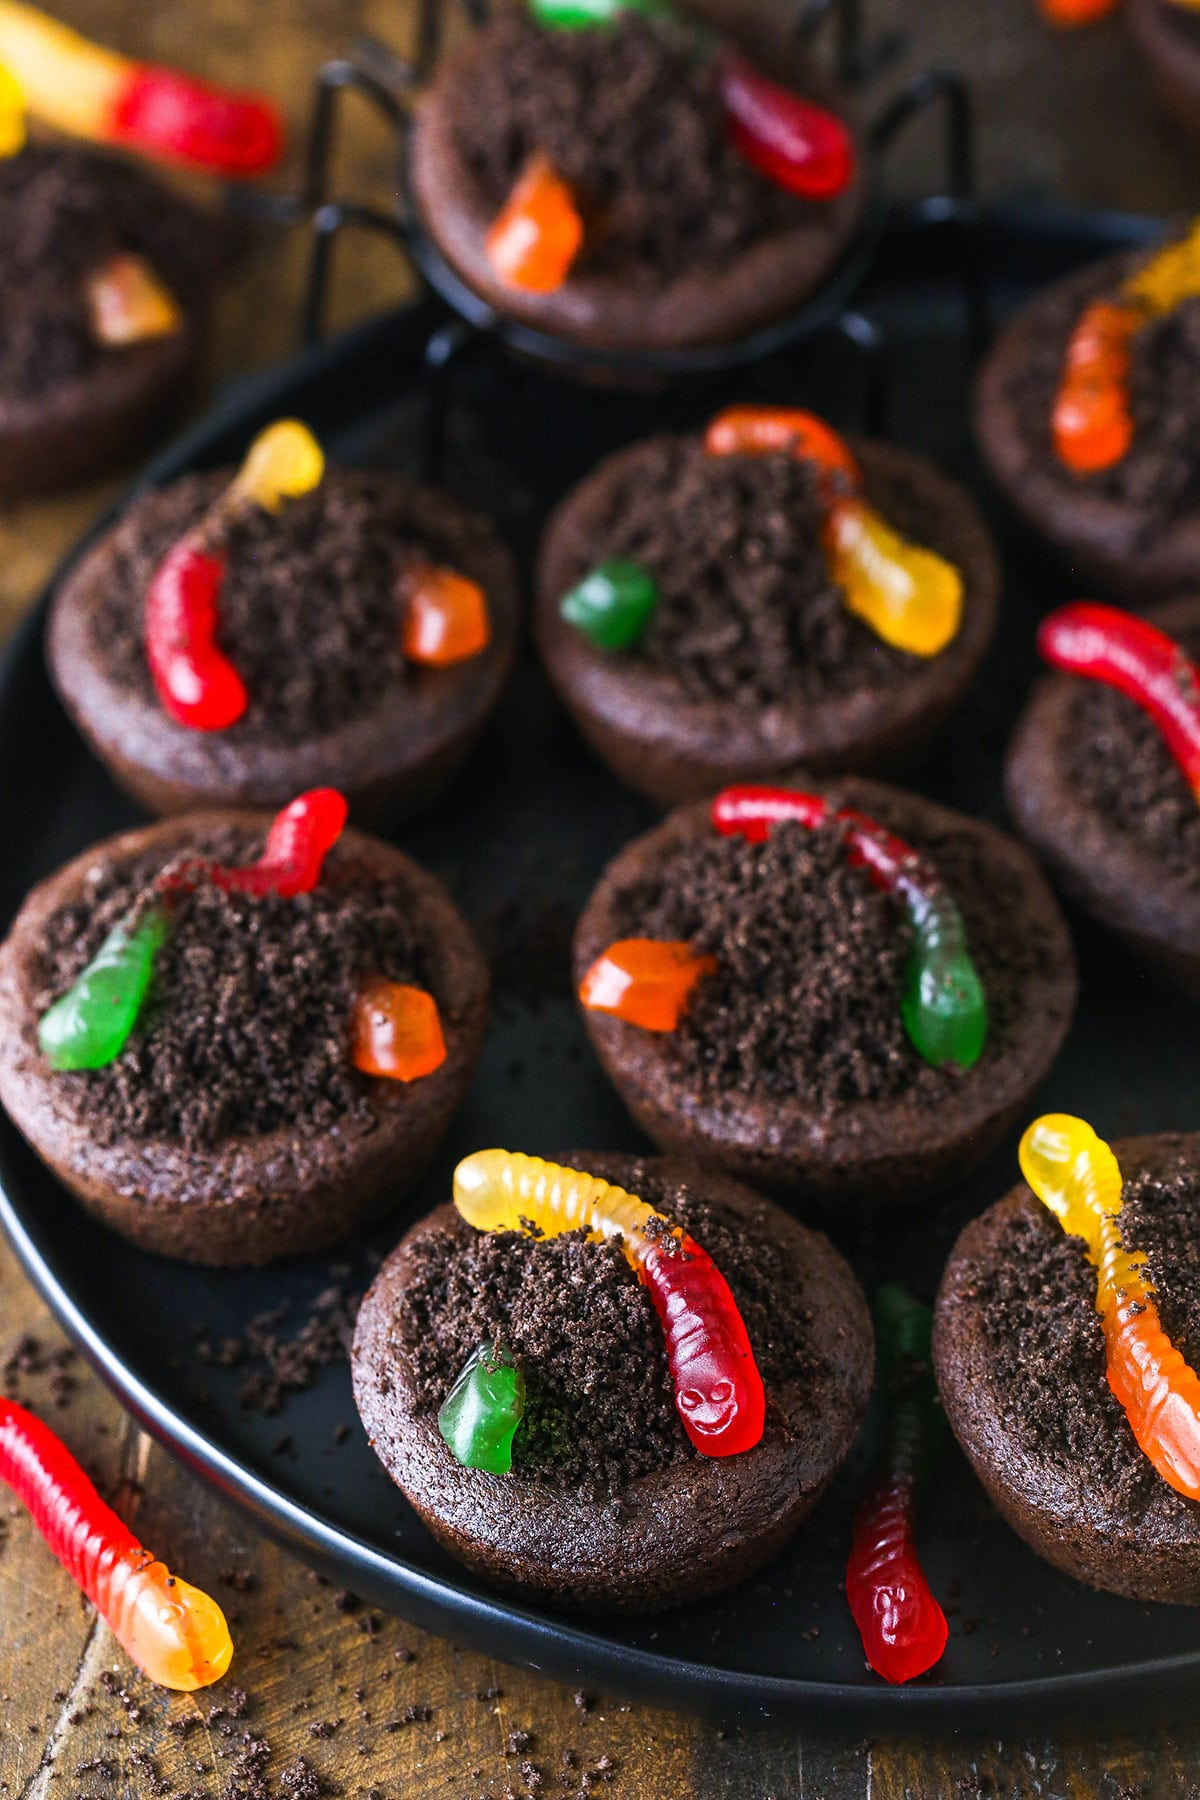 A round, black platter full of Halloween cookies topped with crushed Oreo cookies and two gummy worms